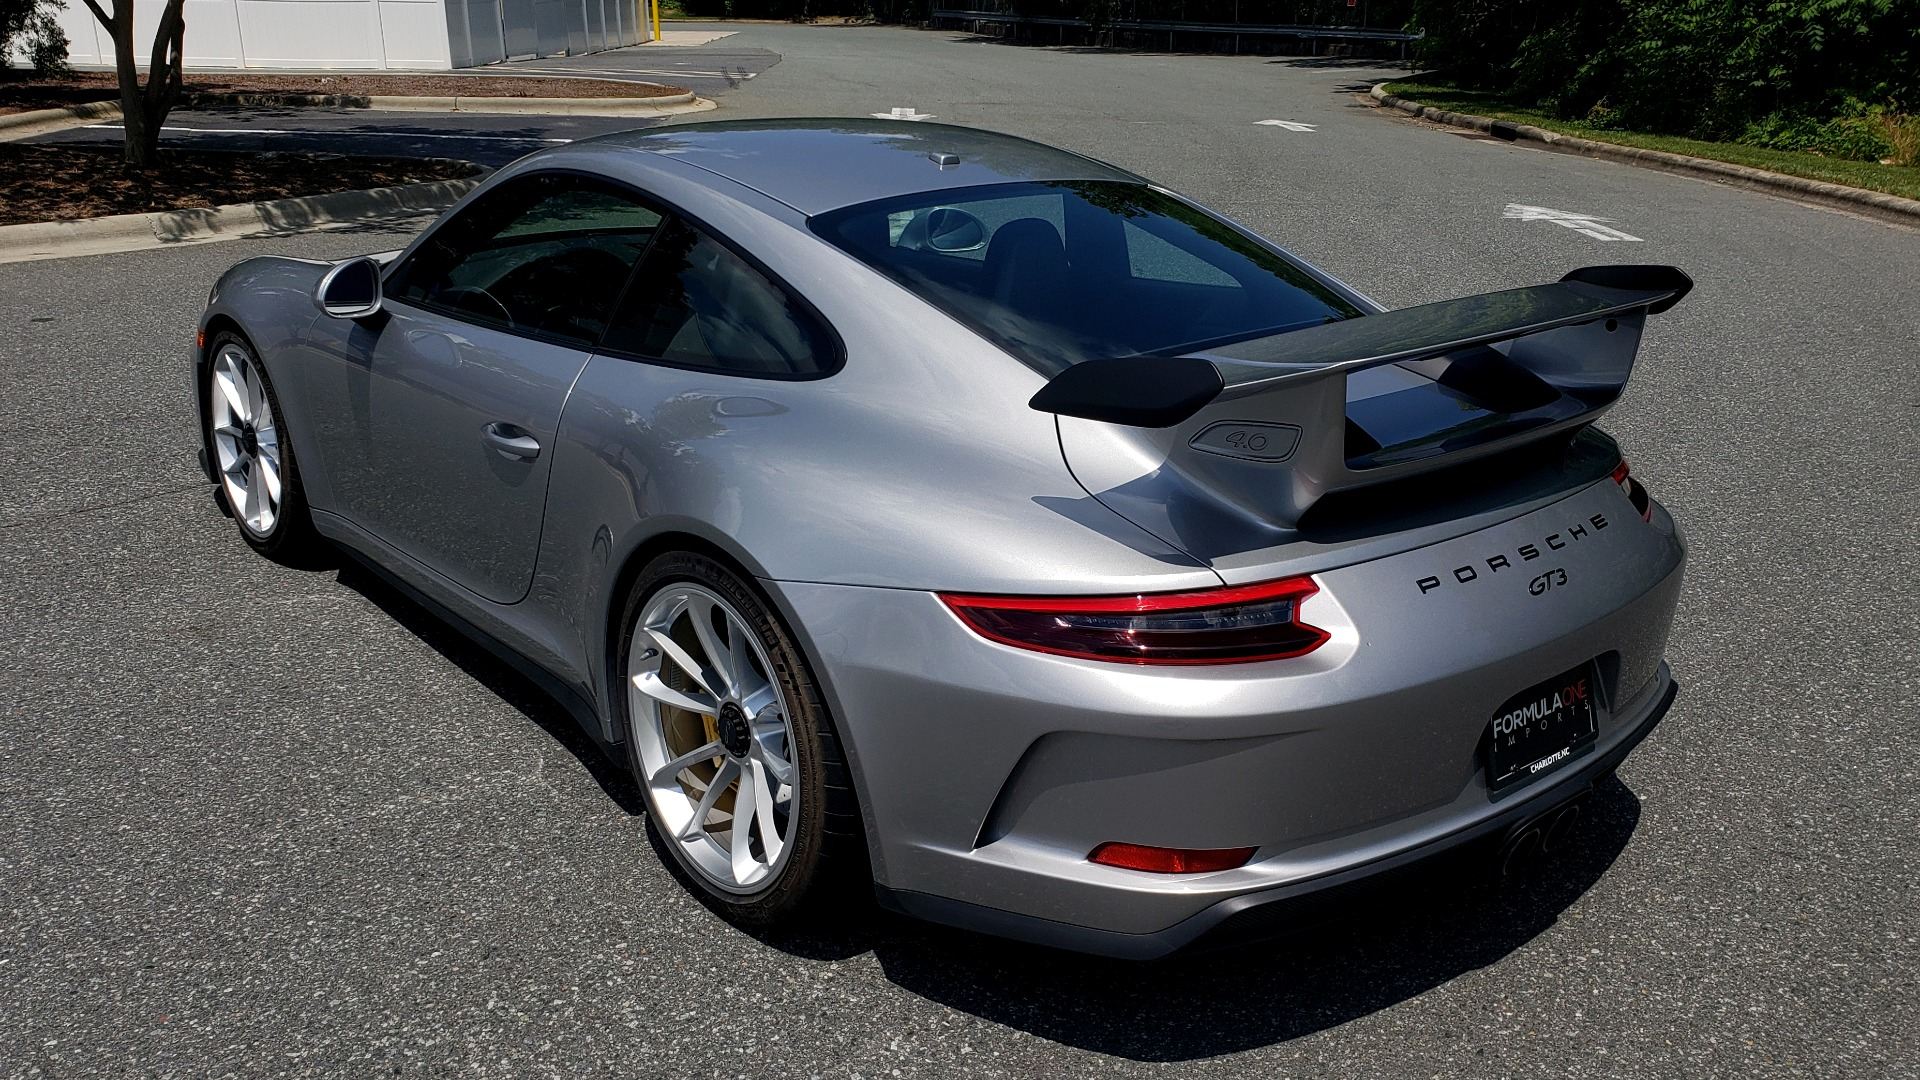 Used 2018 Porsche 911 GT3 4.0L 500HP / 6-SPD MNL / NAV / REARVIEW / PCCB for sale Sold at Formula Imports in Charlotte NC 28227 11